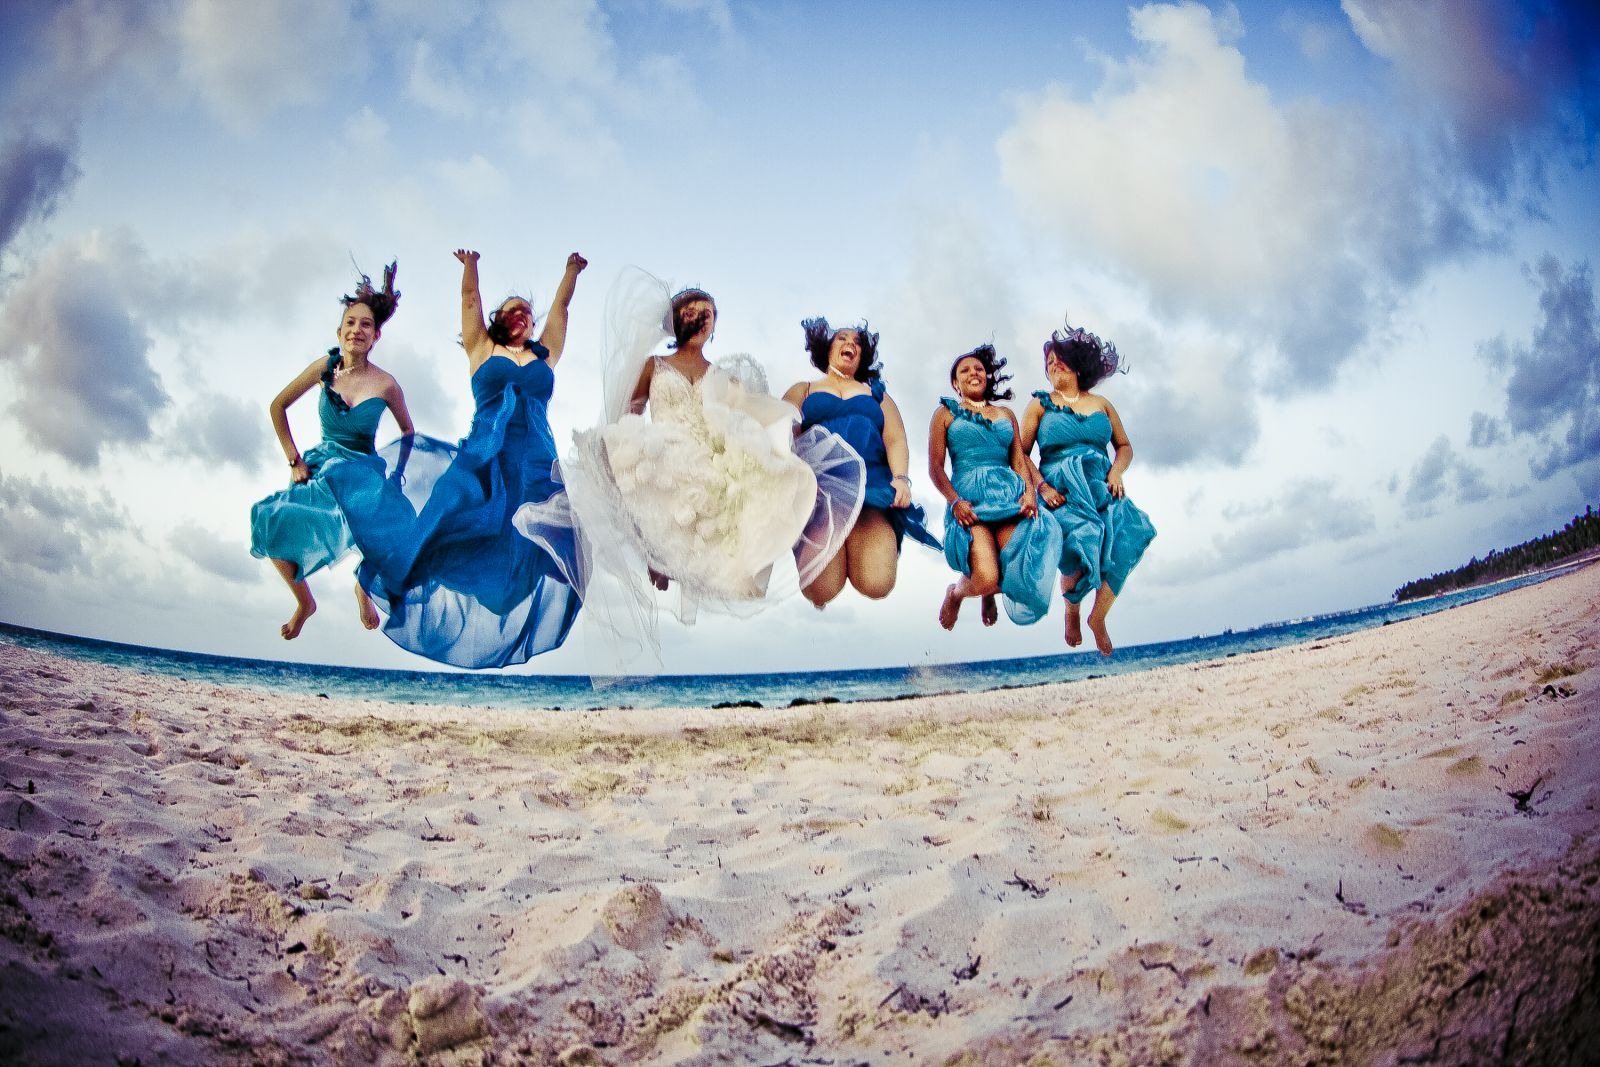 This took way too many takes lol One of my bridesmaids kept landing before everyone else